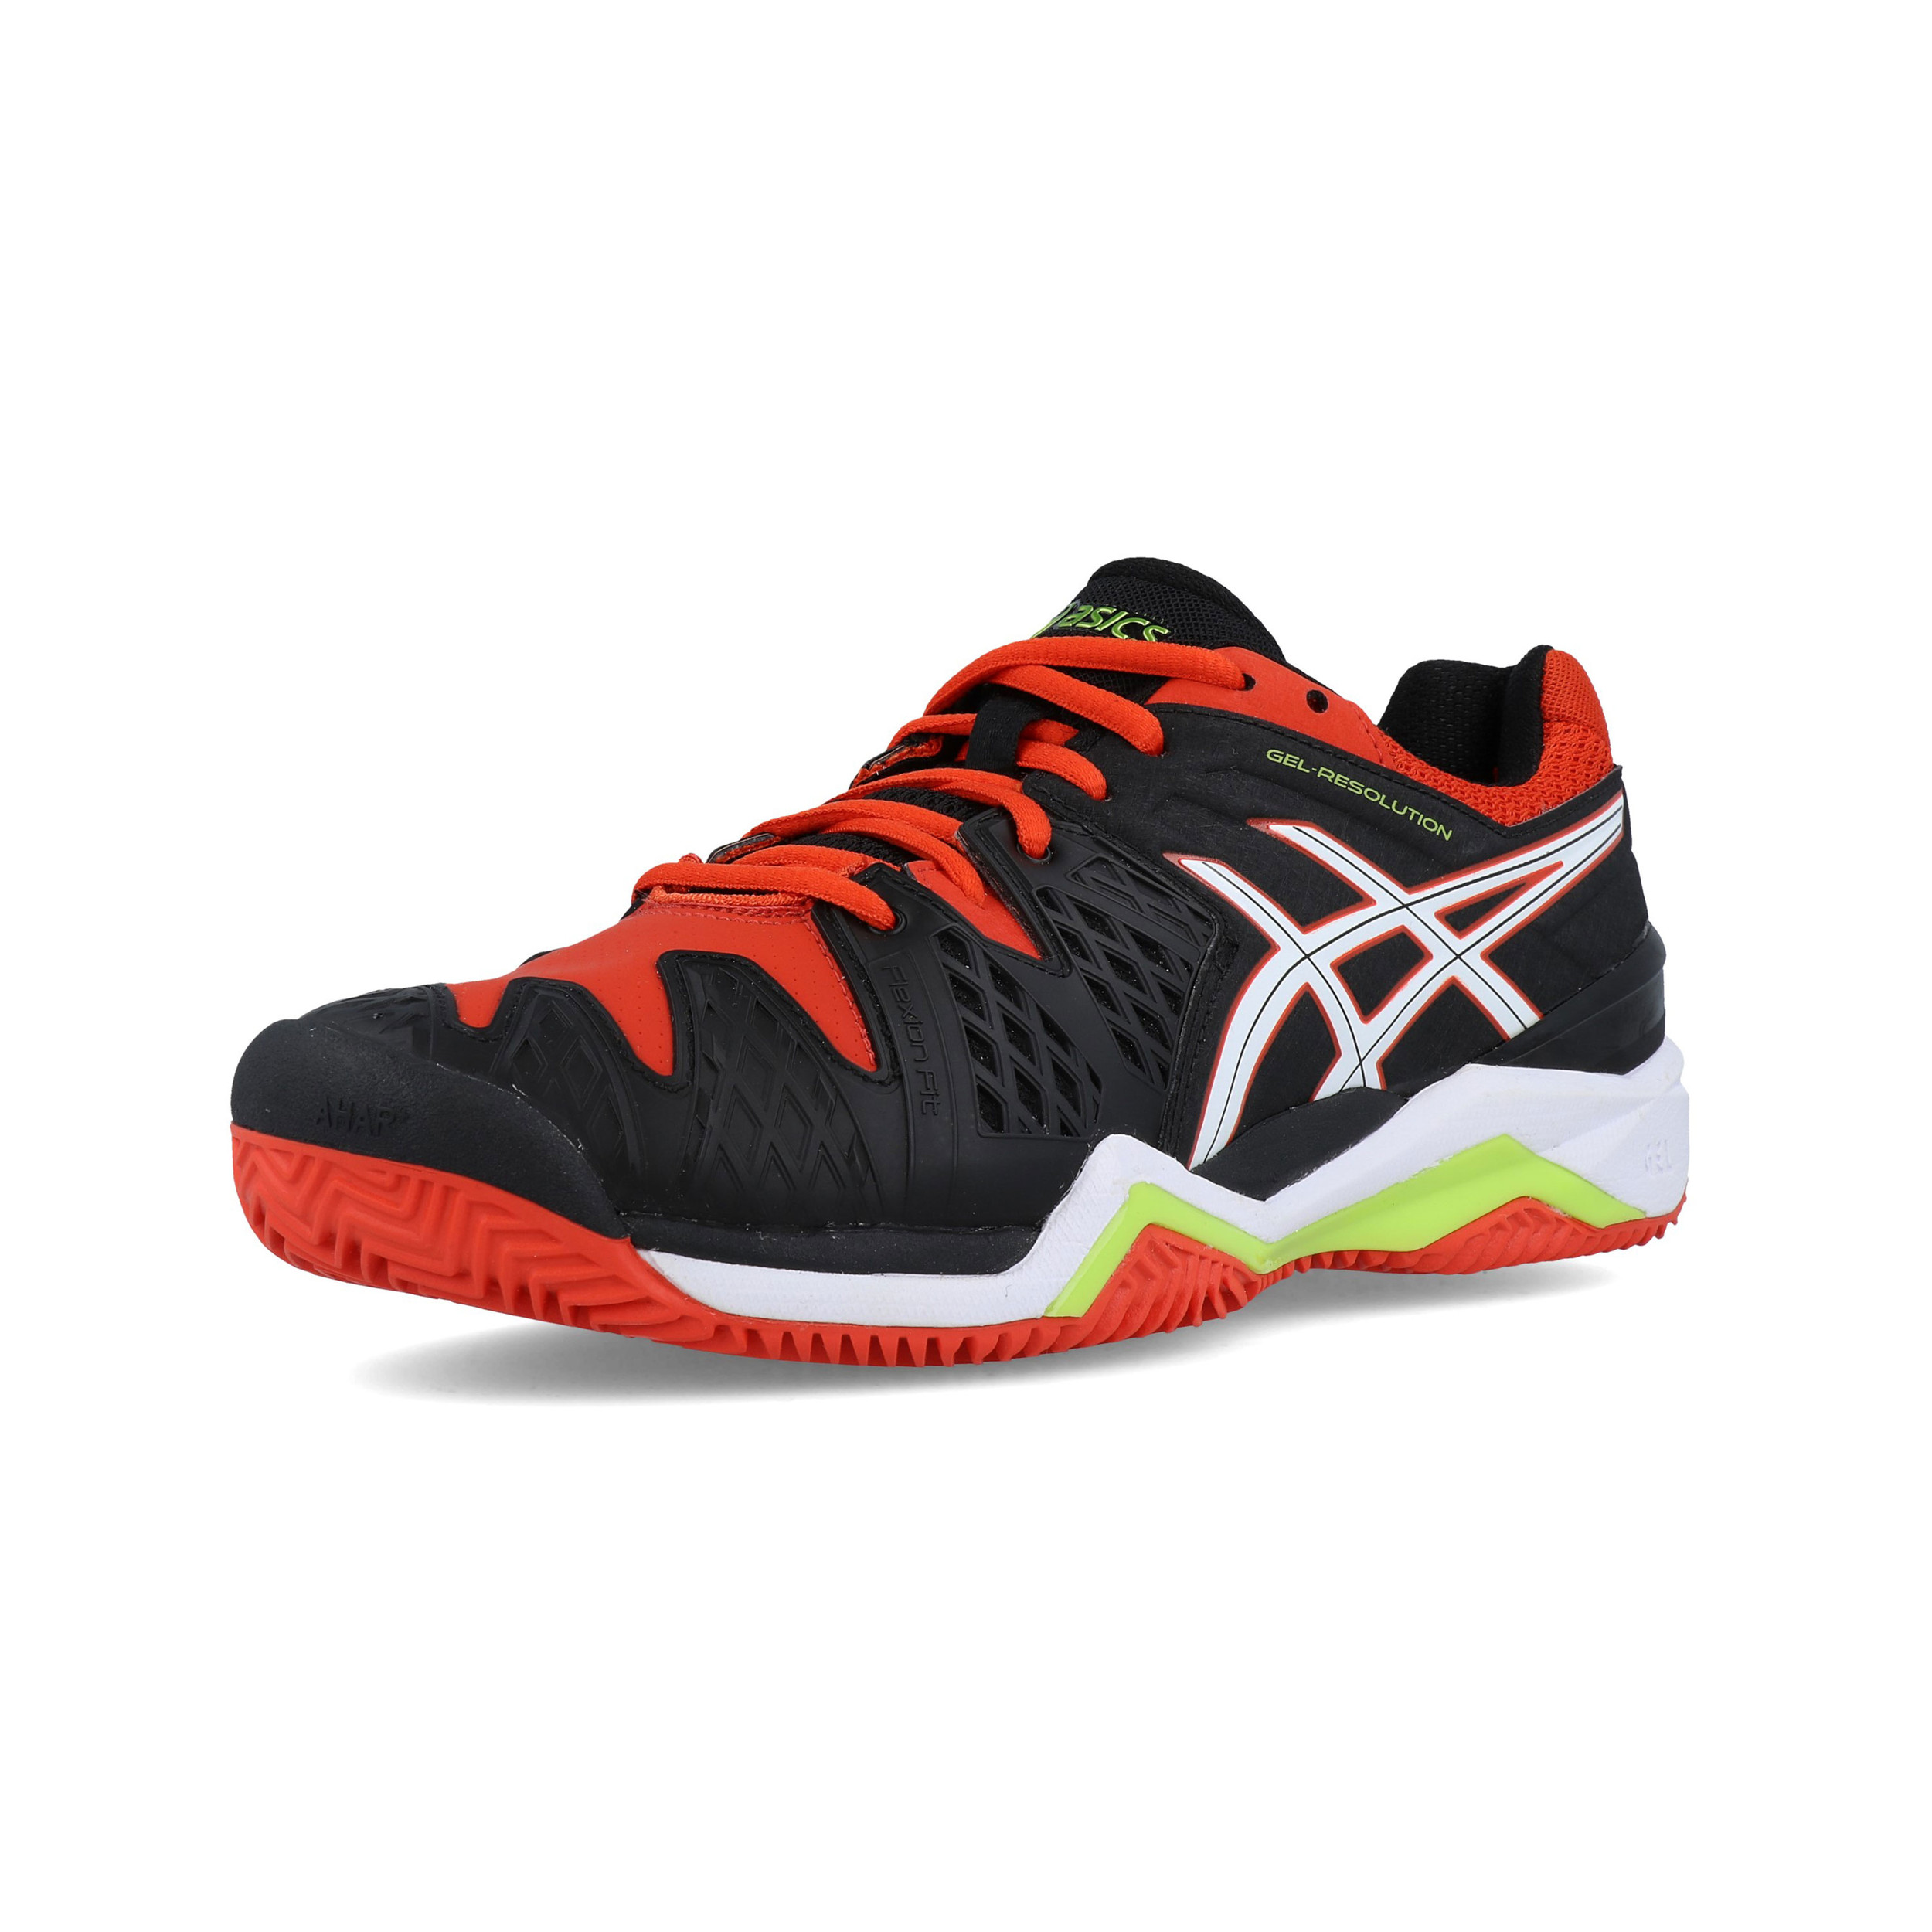 size 40 019f6 3fe39 Asics Hommes Gel-Resolution 6 Clay Court Tennis Chaussures De Sport Baskets